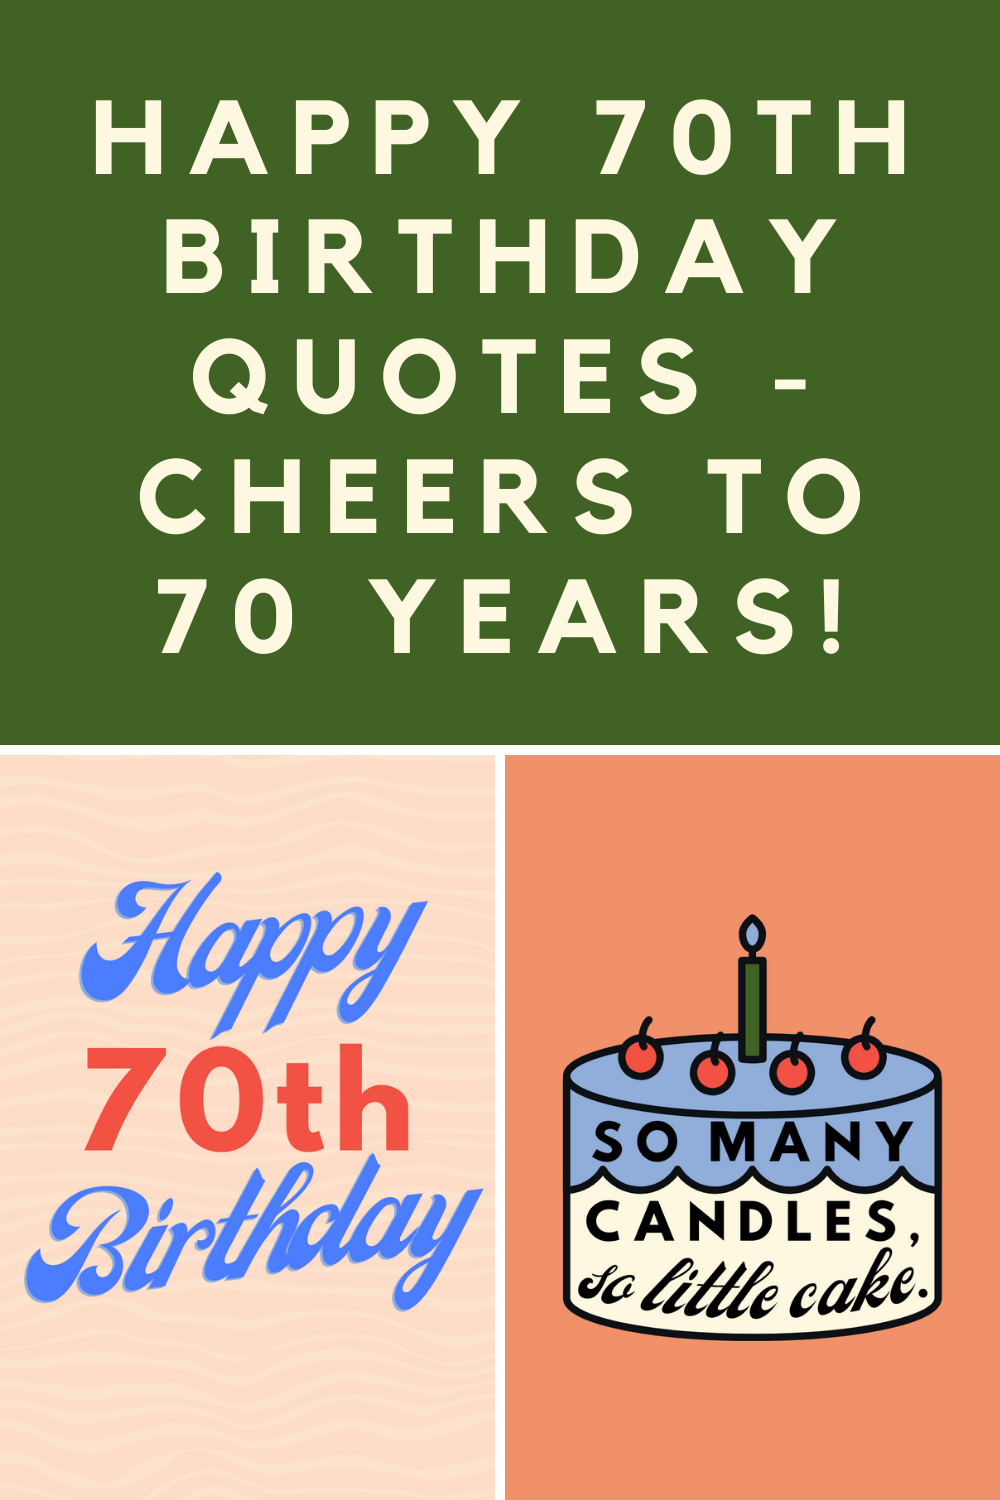 Happy 70th Birthday Quotes Cheers To 70 Years Darling Quote